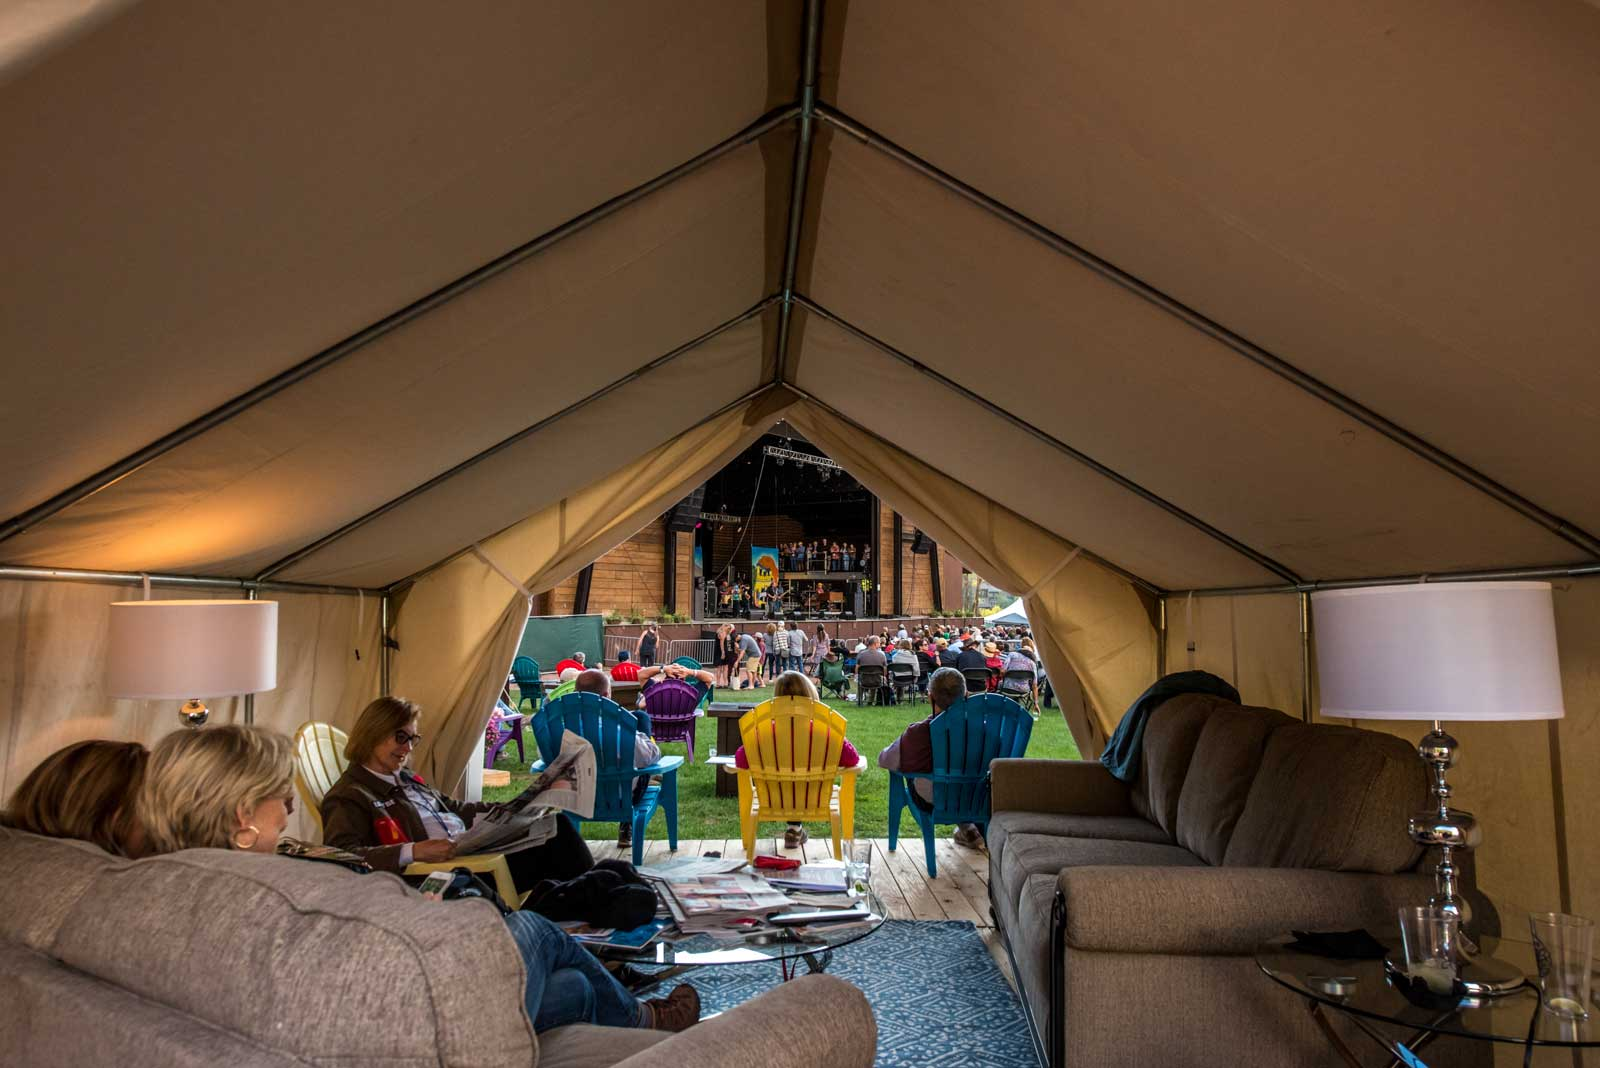 """Safari Cabanas offer shelter or just a great place for your group to call """"home base"""" during the festival. Enjoy the Main Stage entertainment from the comfort of your own Safari Tent curated with luxurious conveniences and a concierge service."""